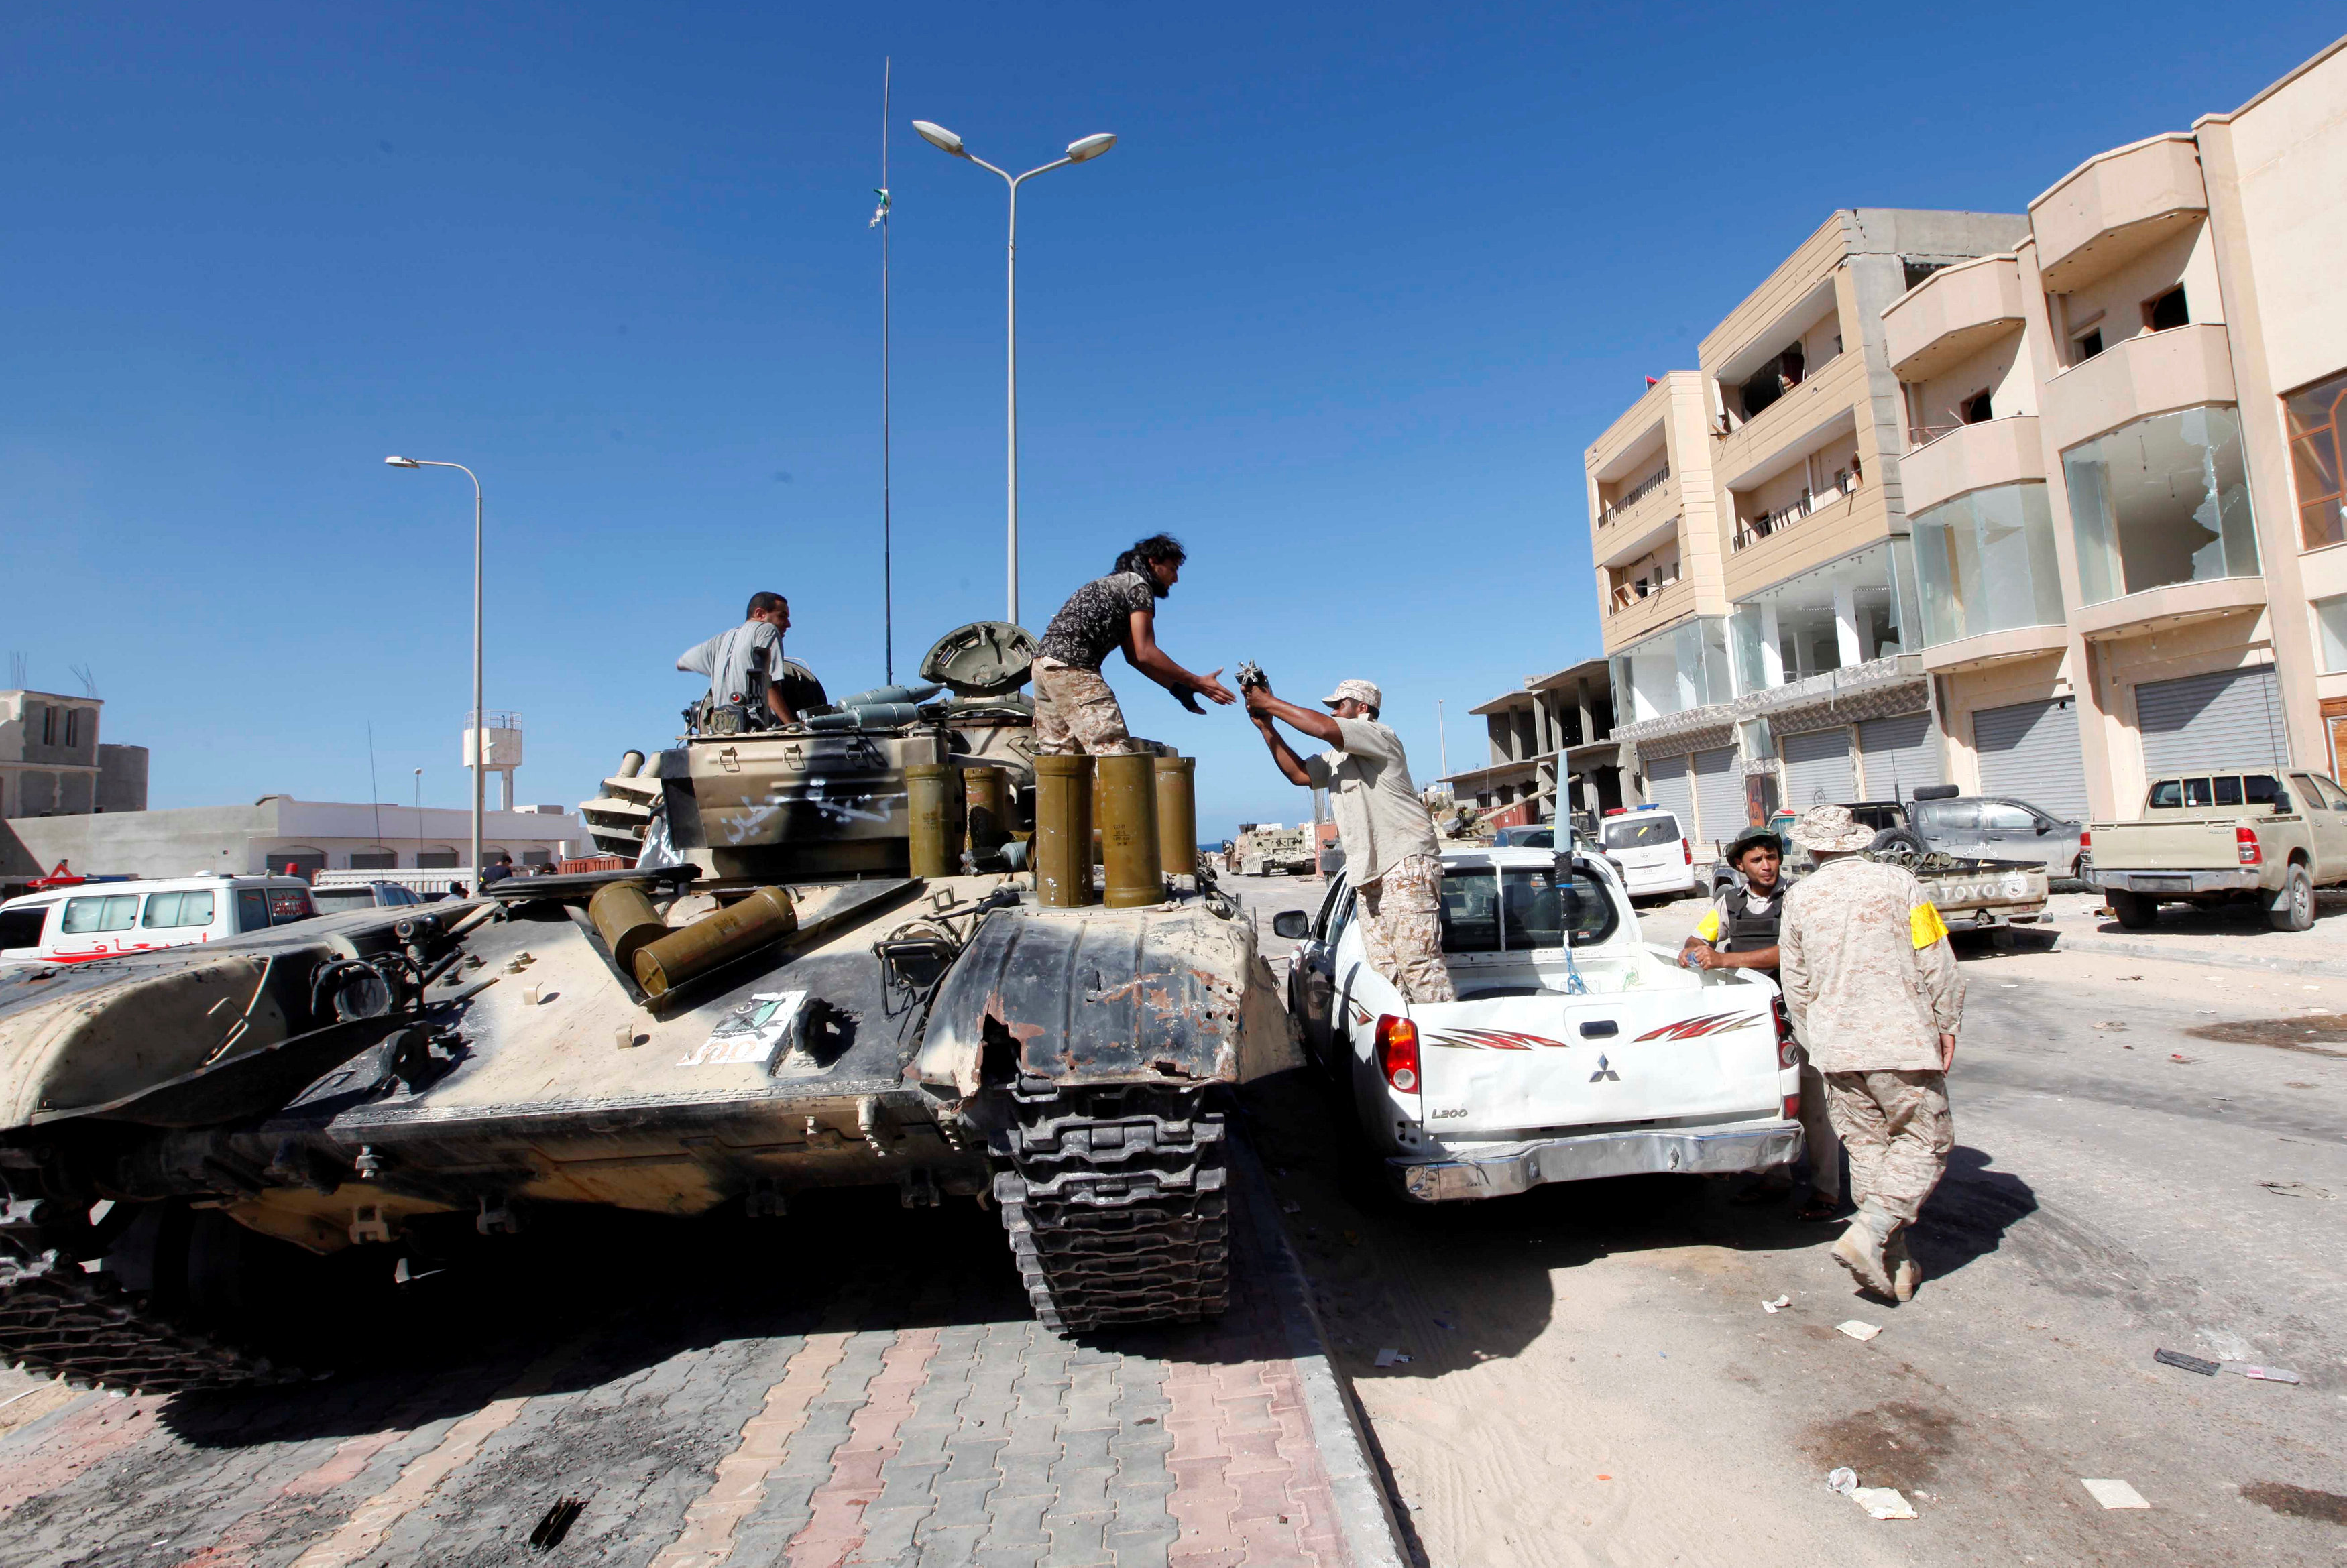 IS militants make a stand in Libyan city of Sirte